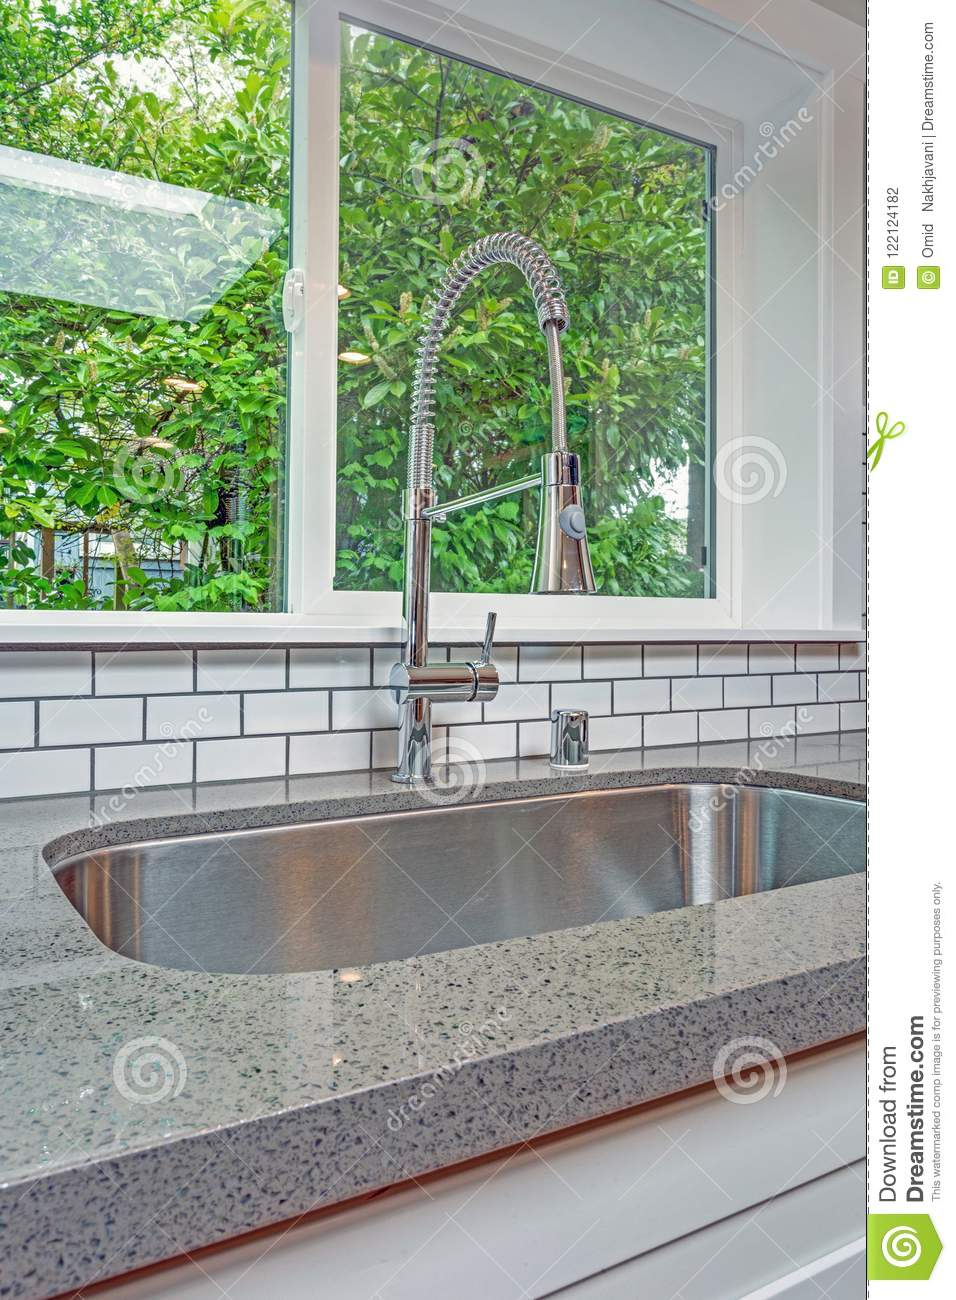 Kitchen interior with focus on undermount sink.